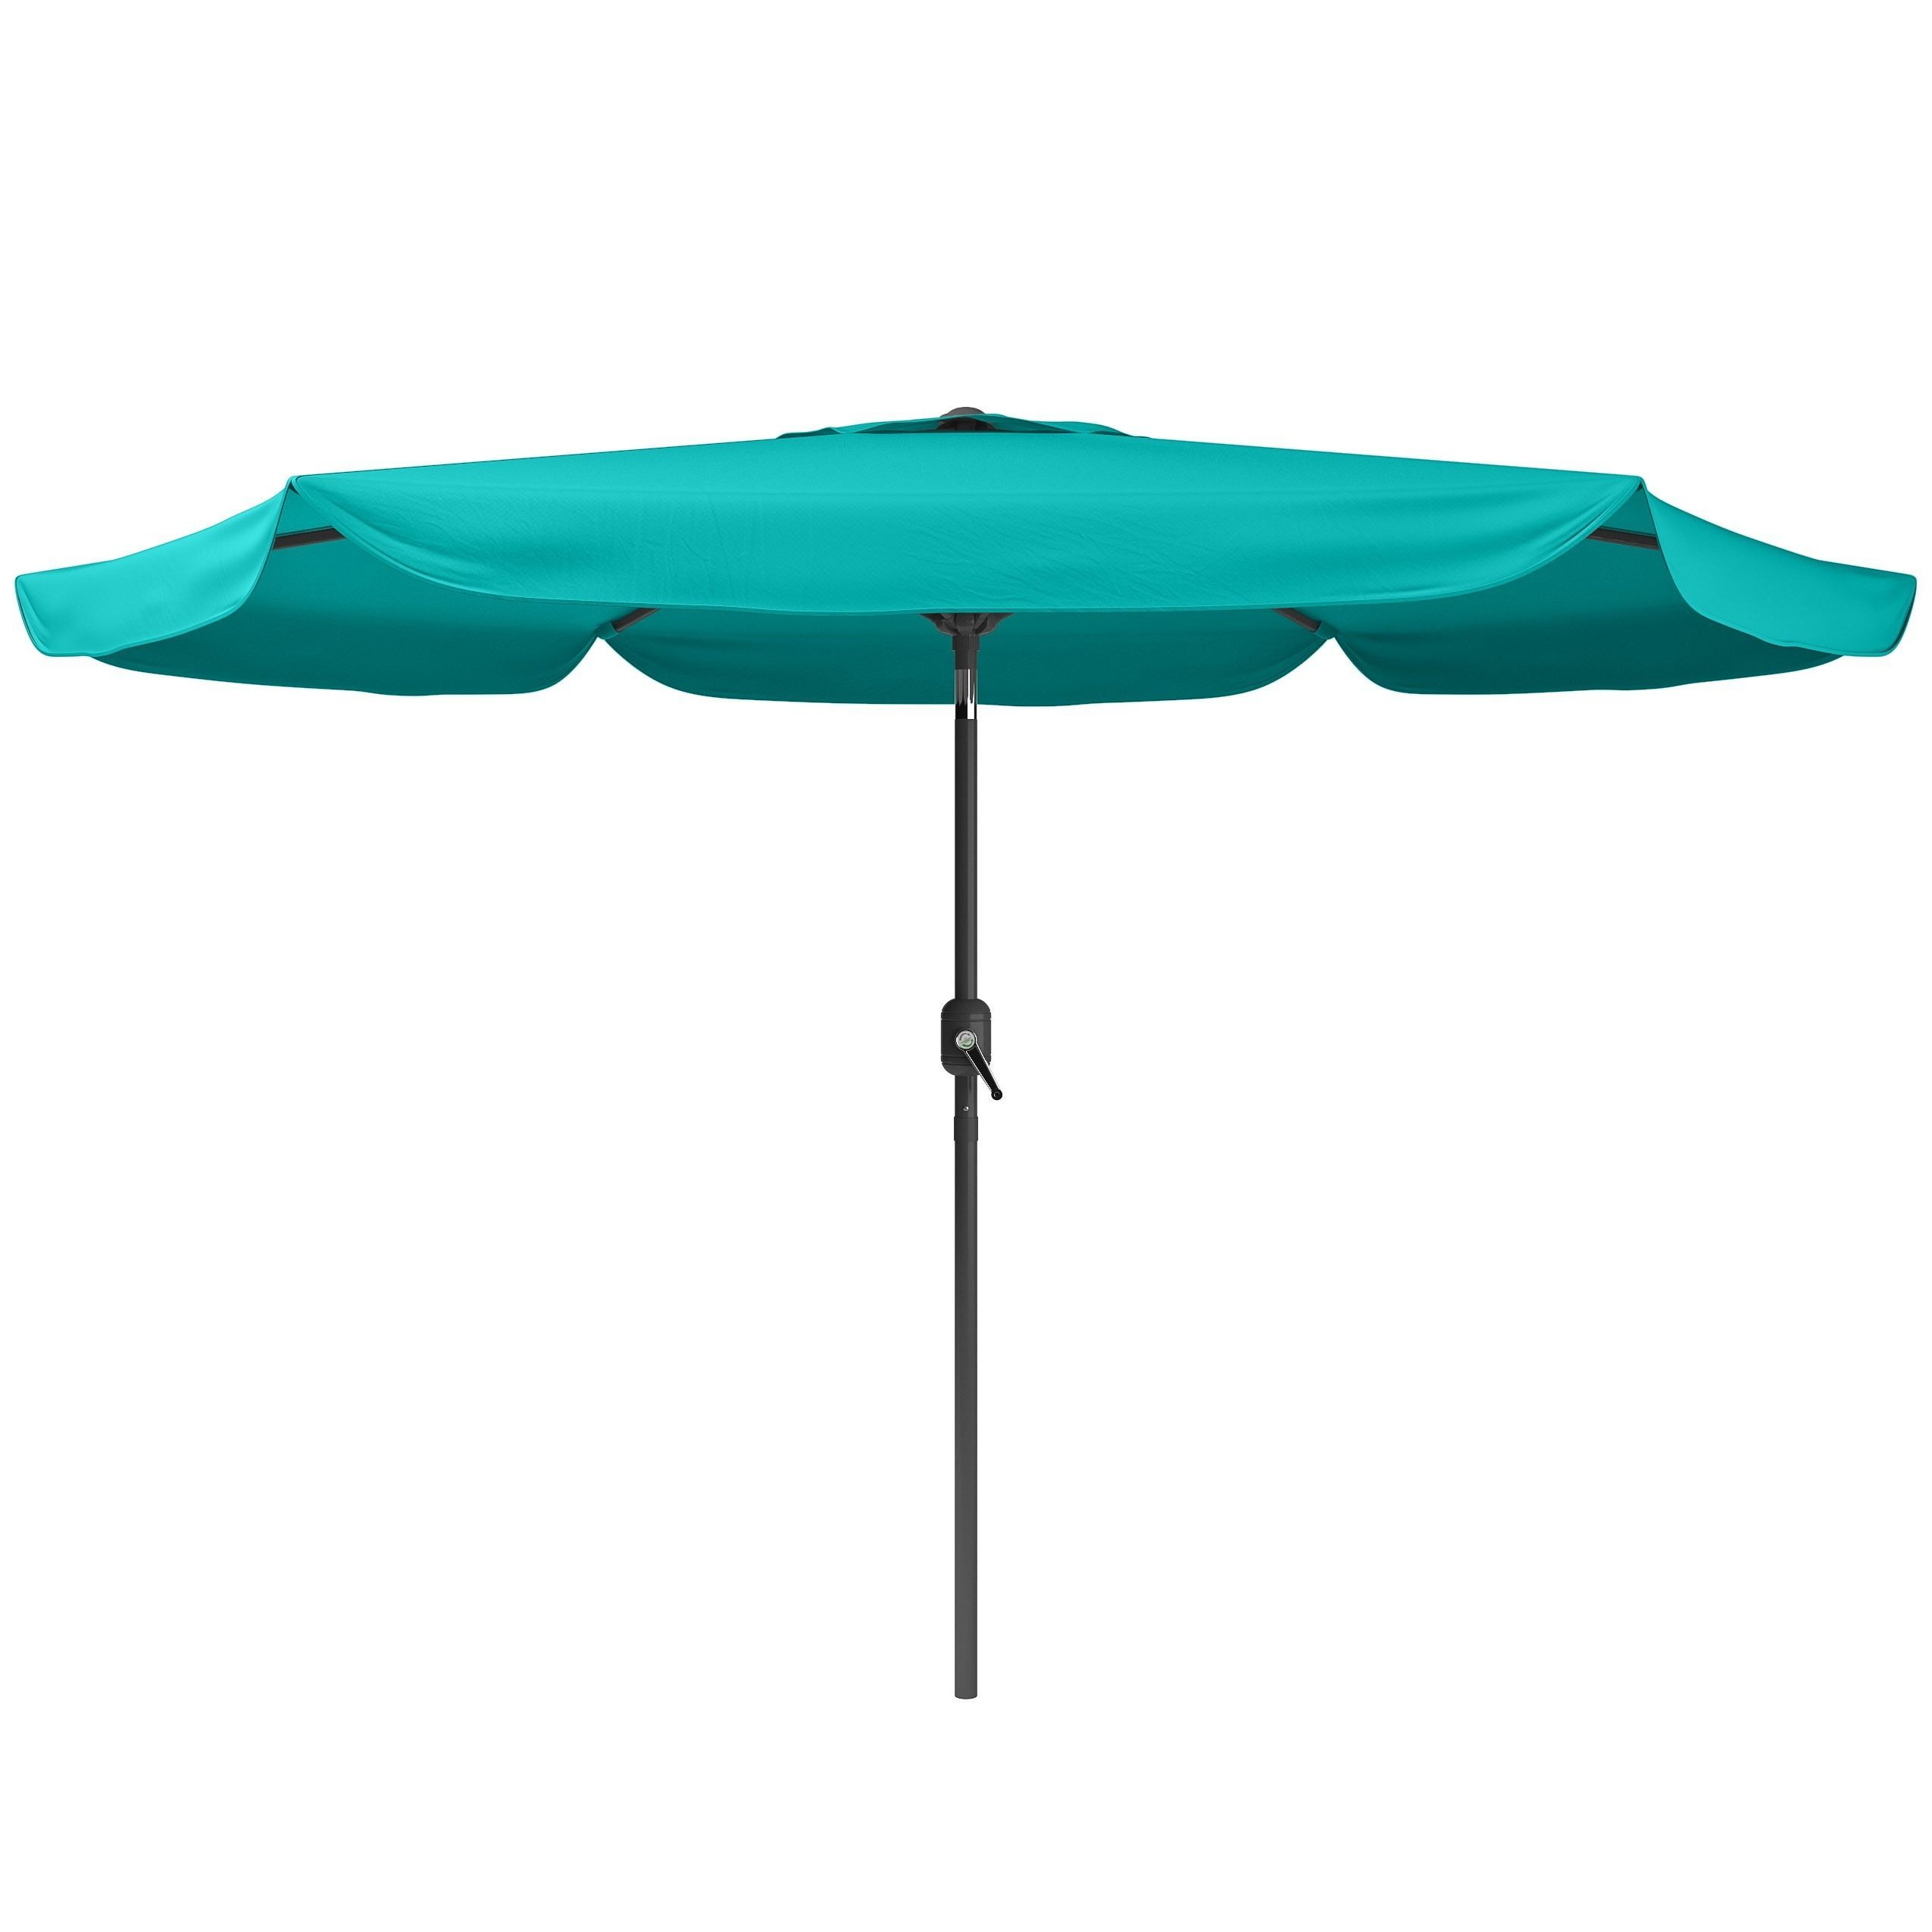 Bon CorLiving Tilting Patio Umbrella (Turquoise Blue), Size 9.5 Foot (Aluminum)